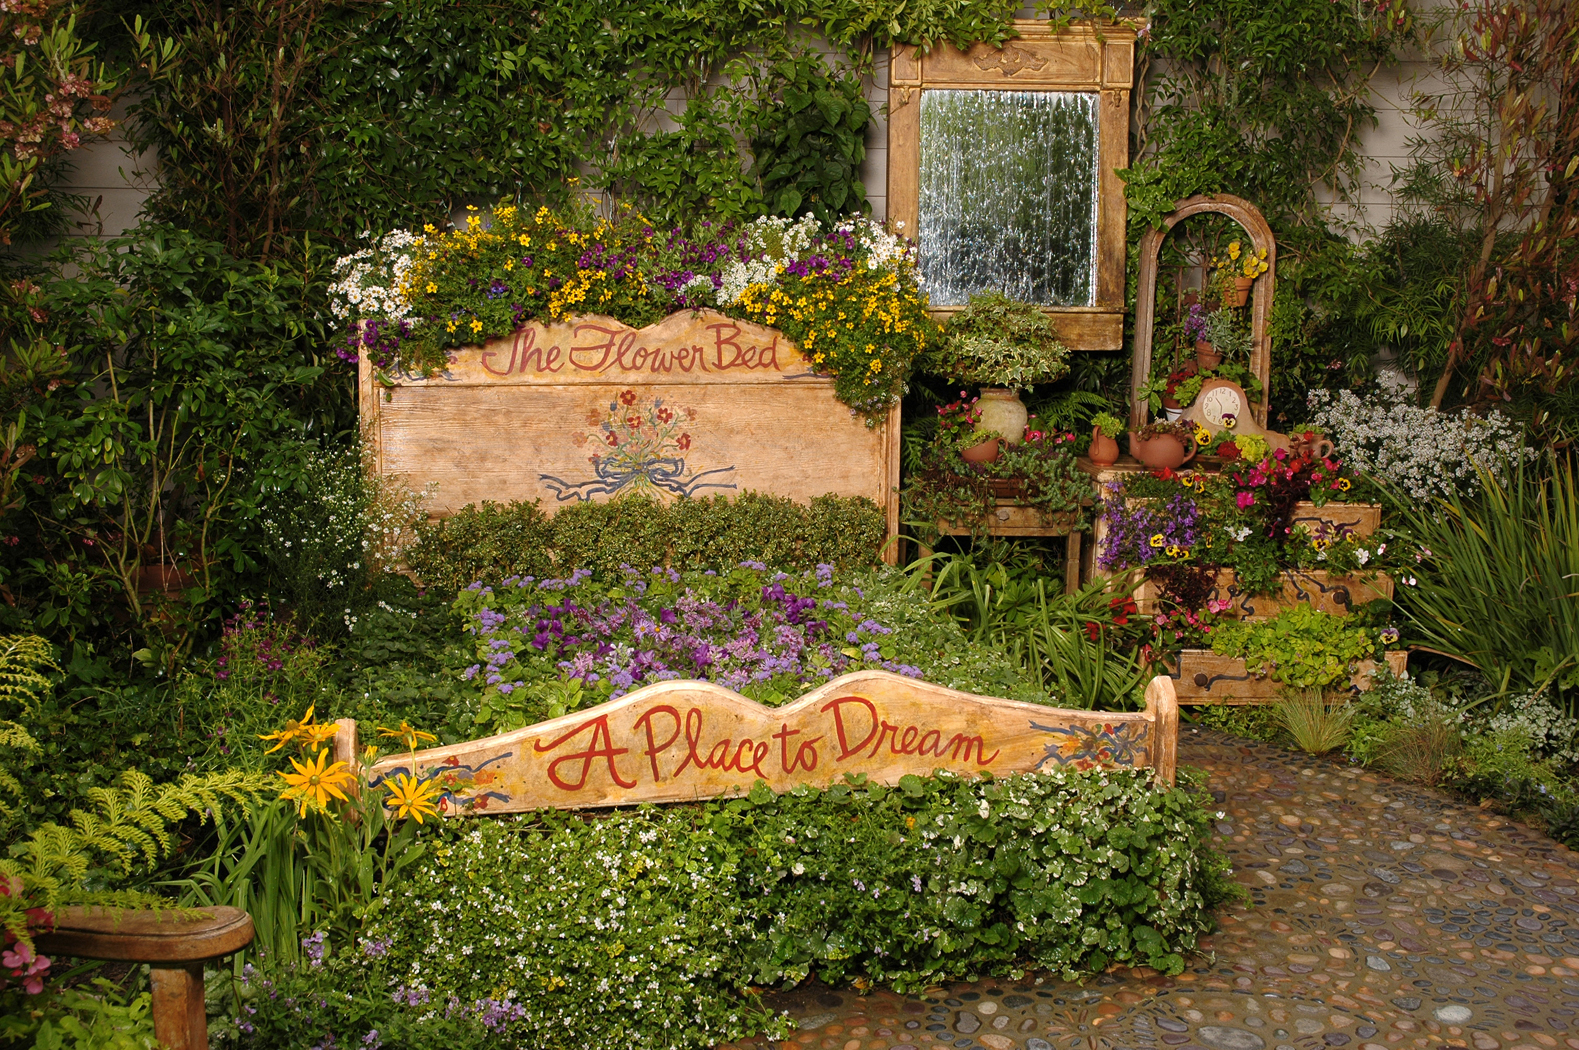 the literal flower bed is one of the most popular attractions in